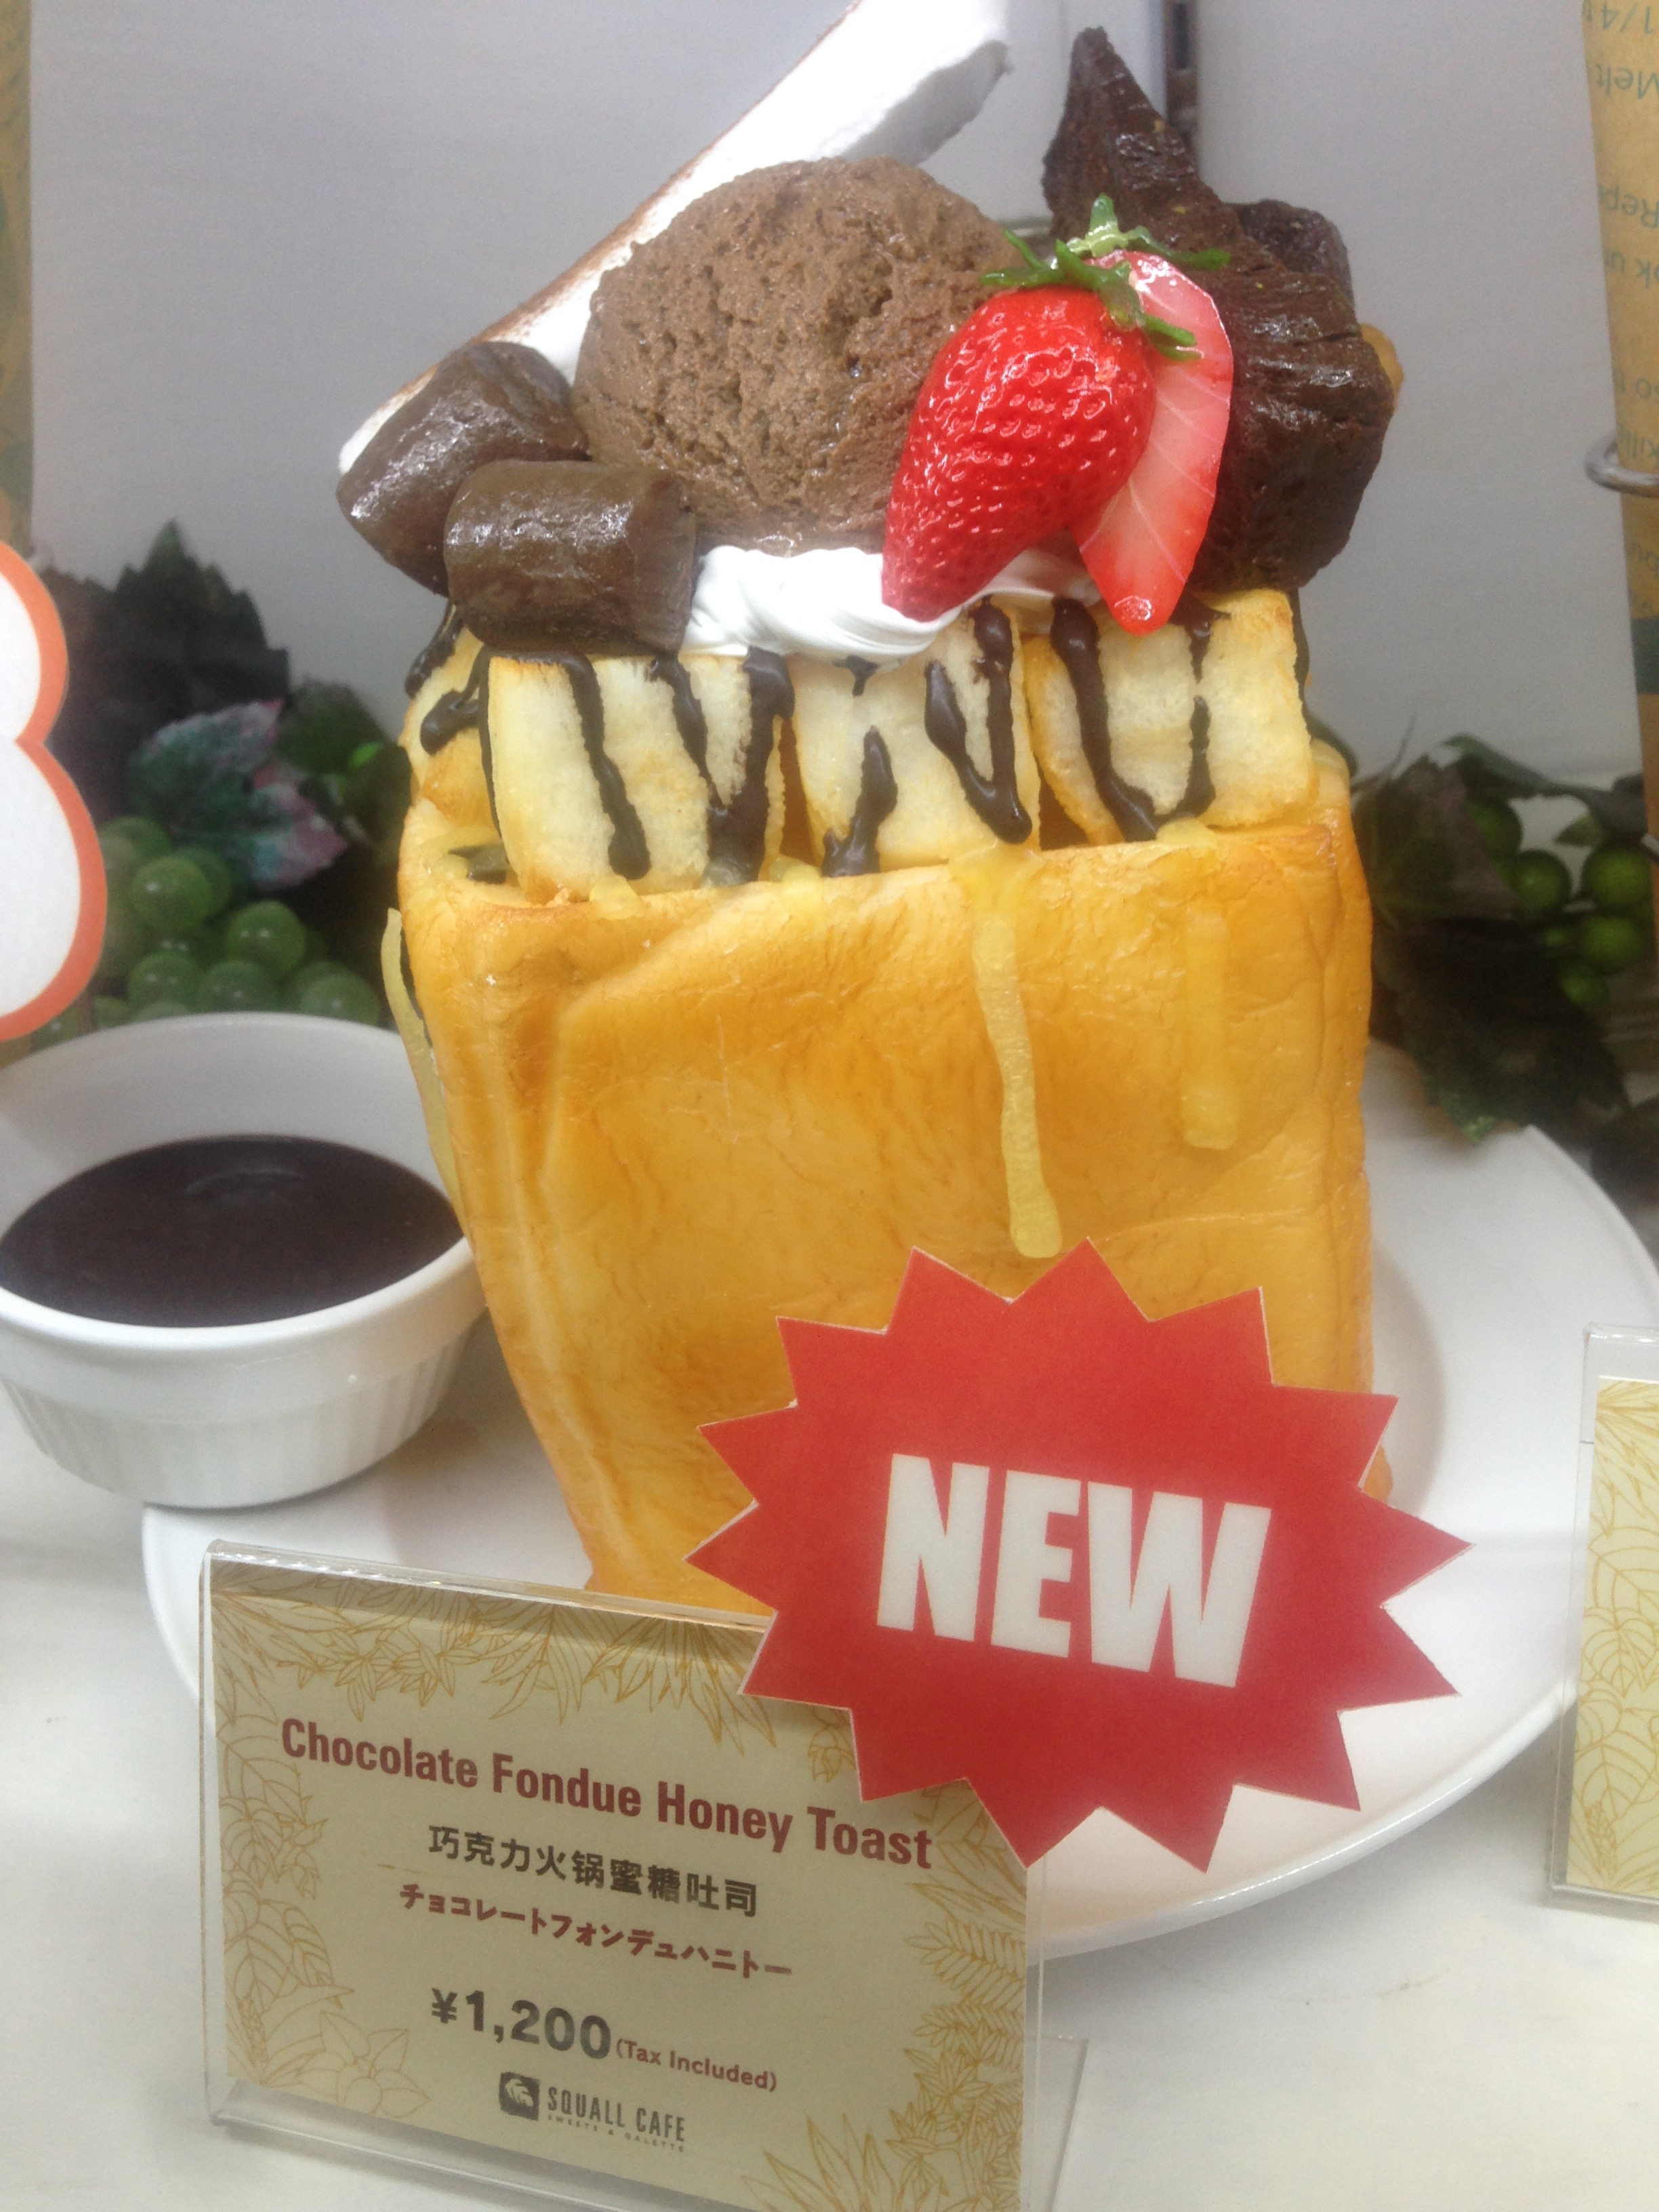 Toast is making a serious comeback in the dessert industry